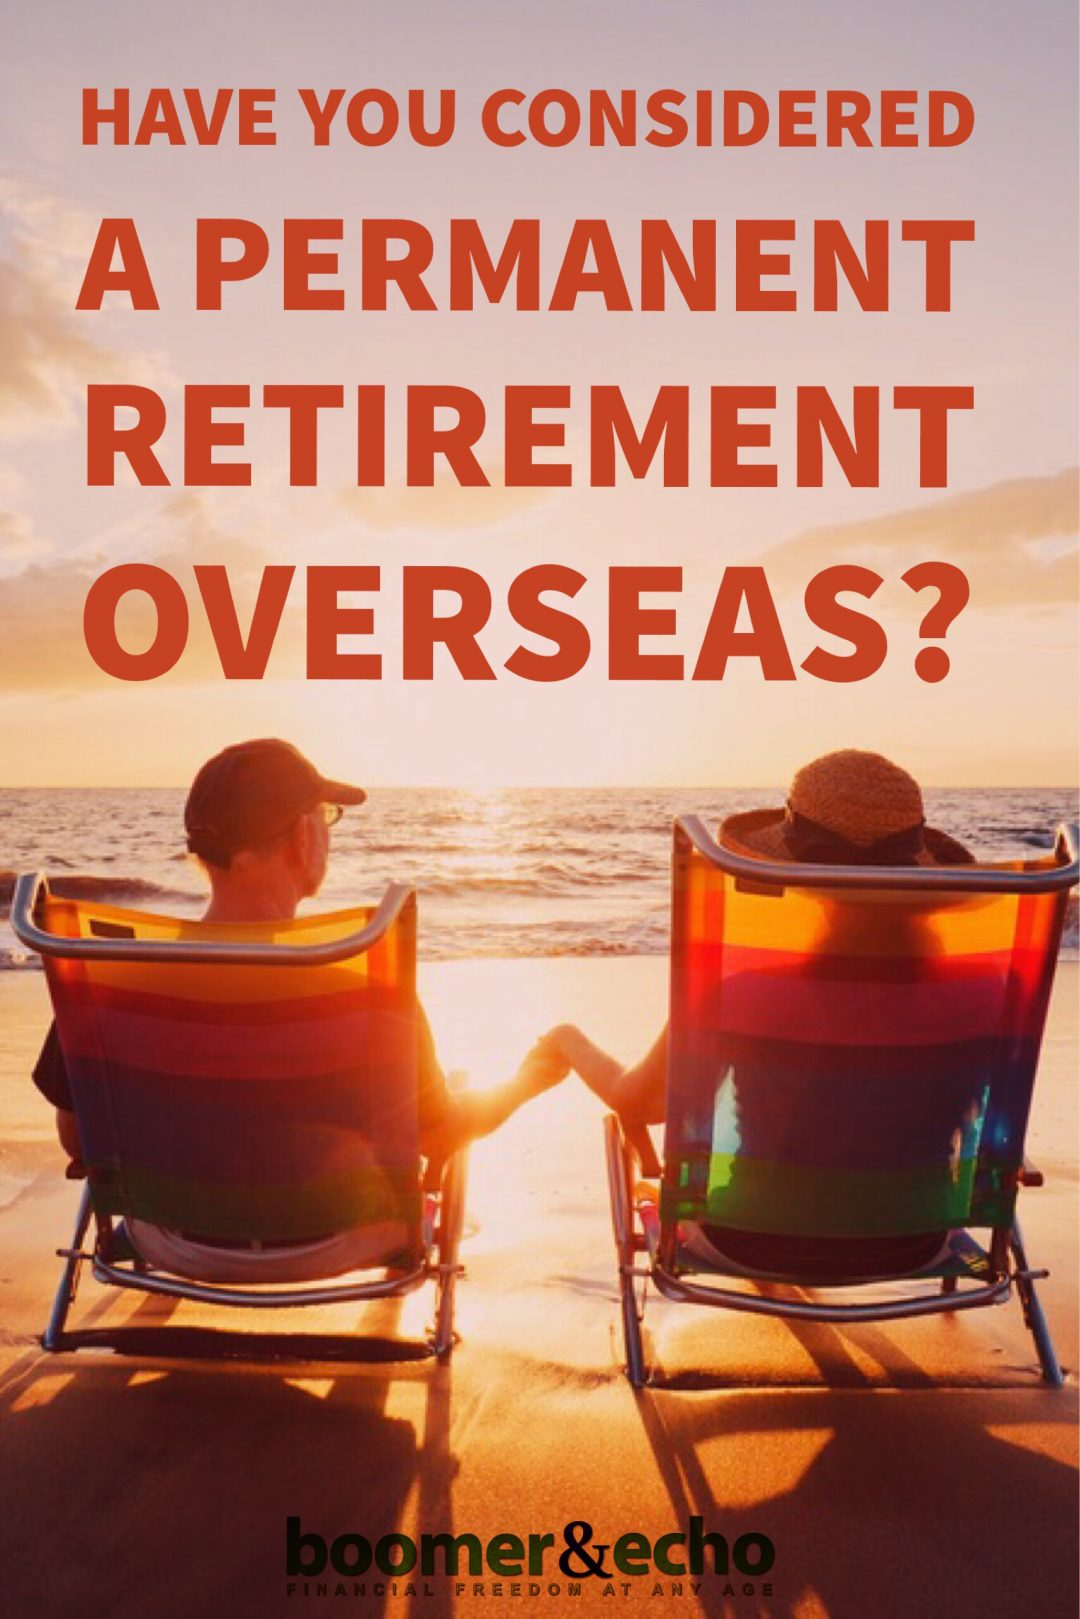 Have You Considered A Permanent Retirement Overseas? Read This: